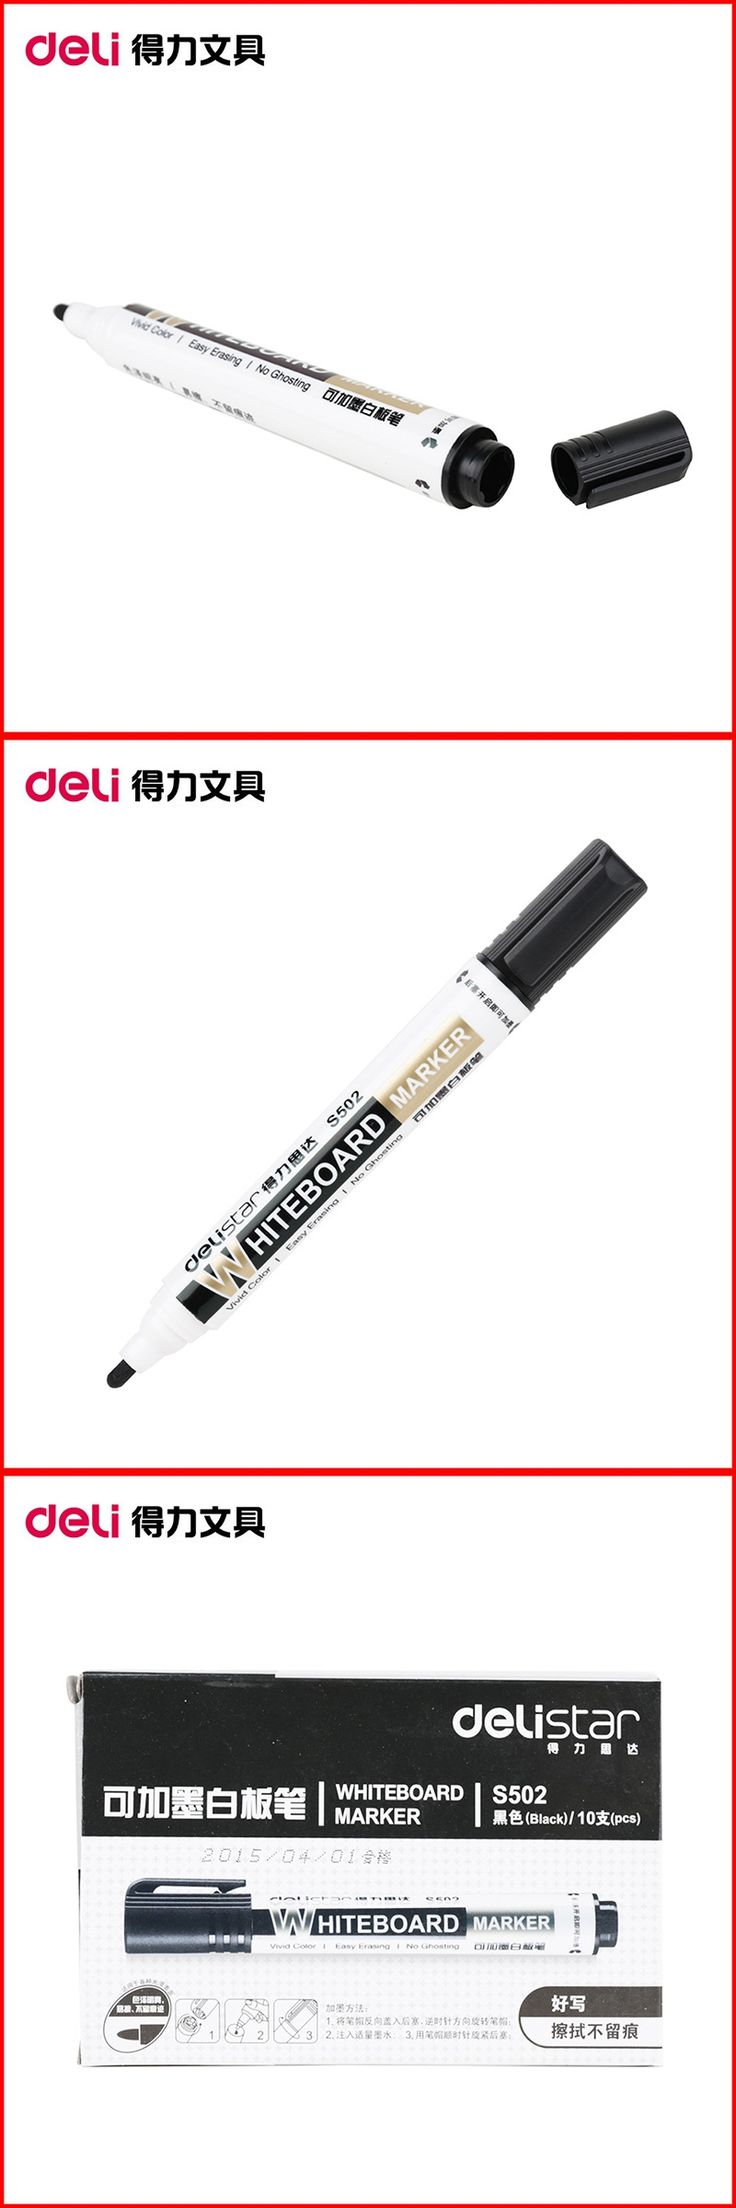 1pc The whiteboard pen capable S502 can add ink pen smooth wear-resisting whiteboard maker pen OWT011